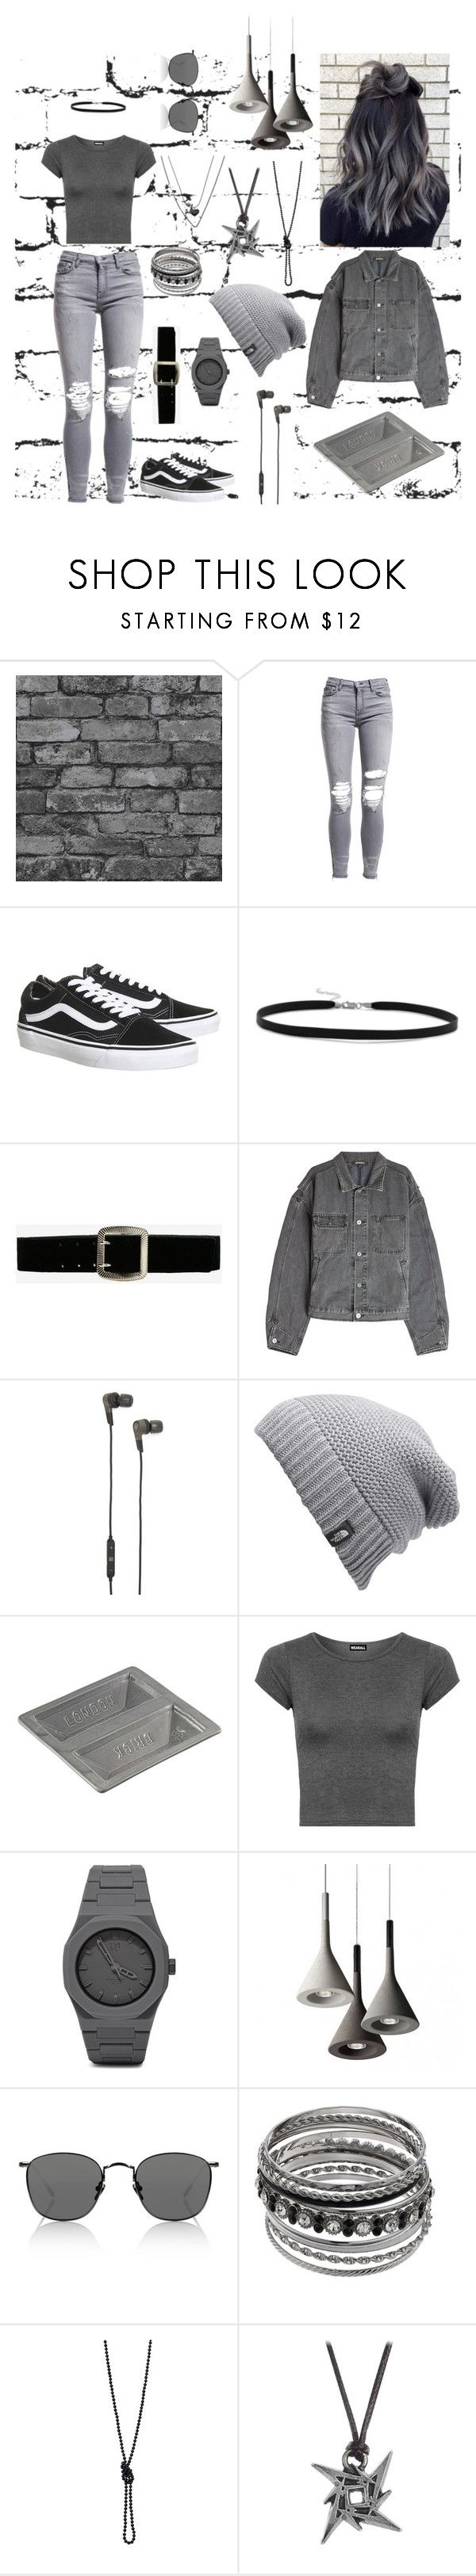 """""""Grey contest"""" by jaden5923 ❤ liked on Polyvore featuring AMIRI, Topshop, BillyTheTree, Express, Yeezy by Kanye West, B&O Play, The North Face, StolenForm, WearAll and CC"""